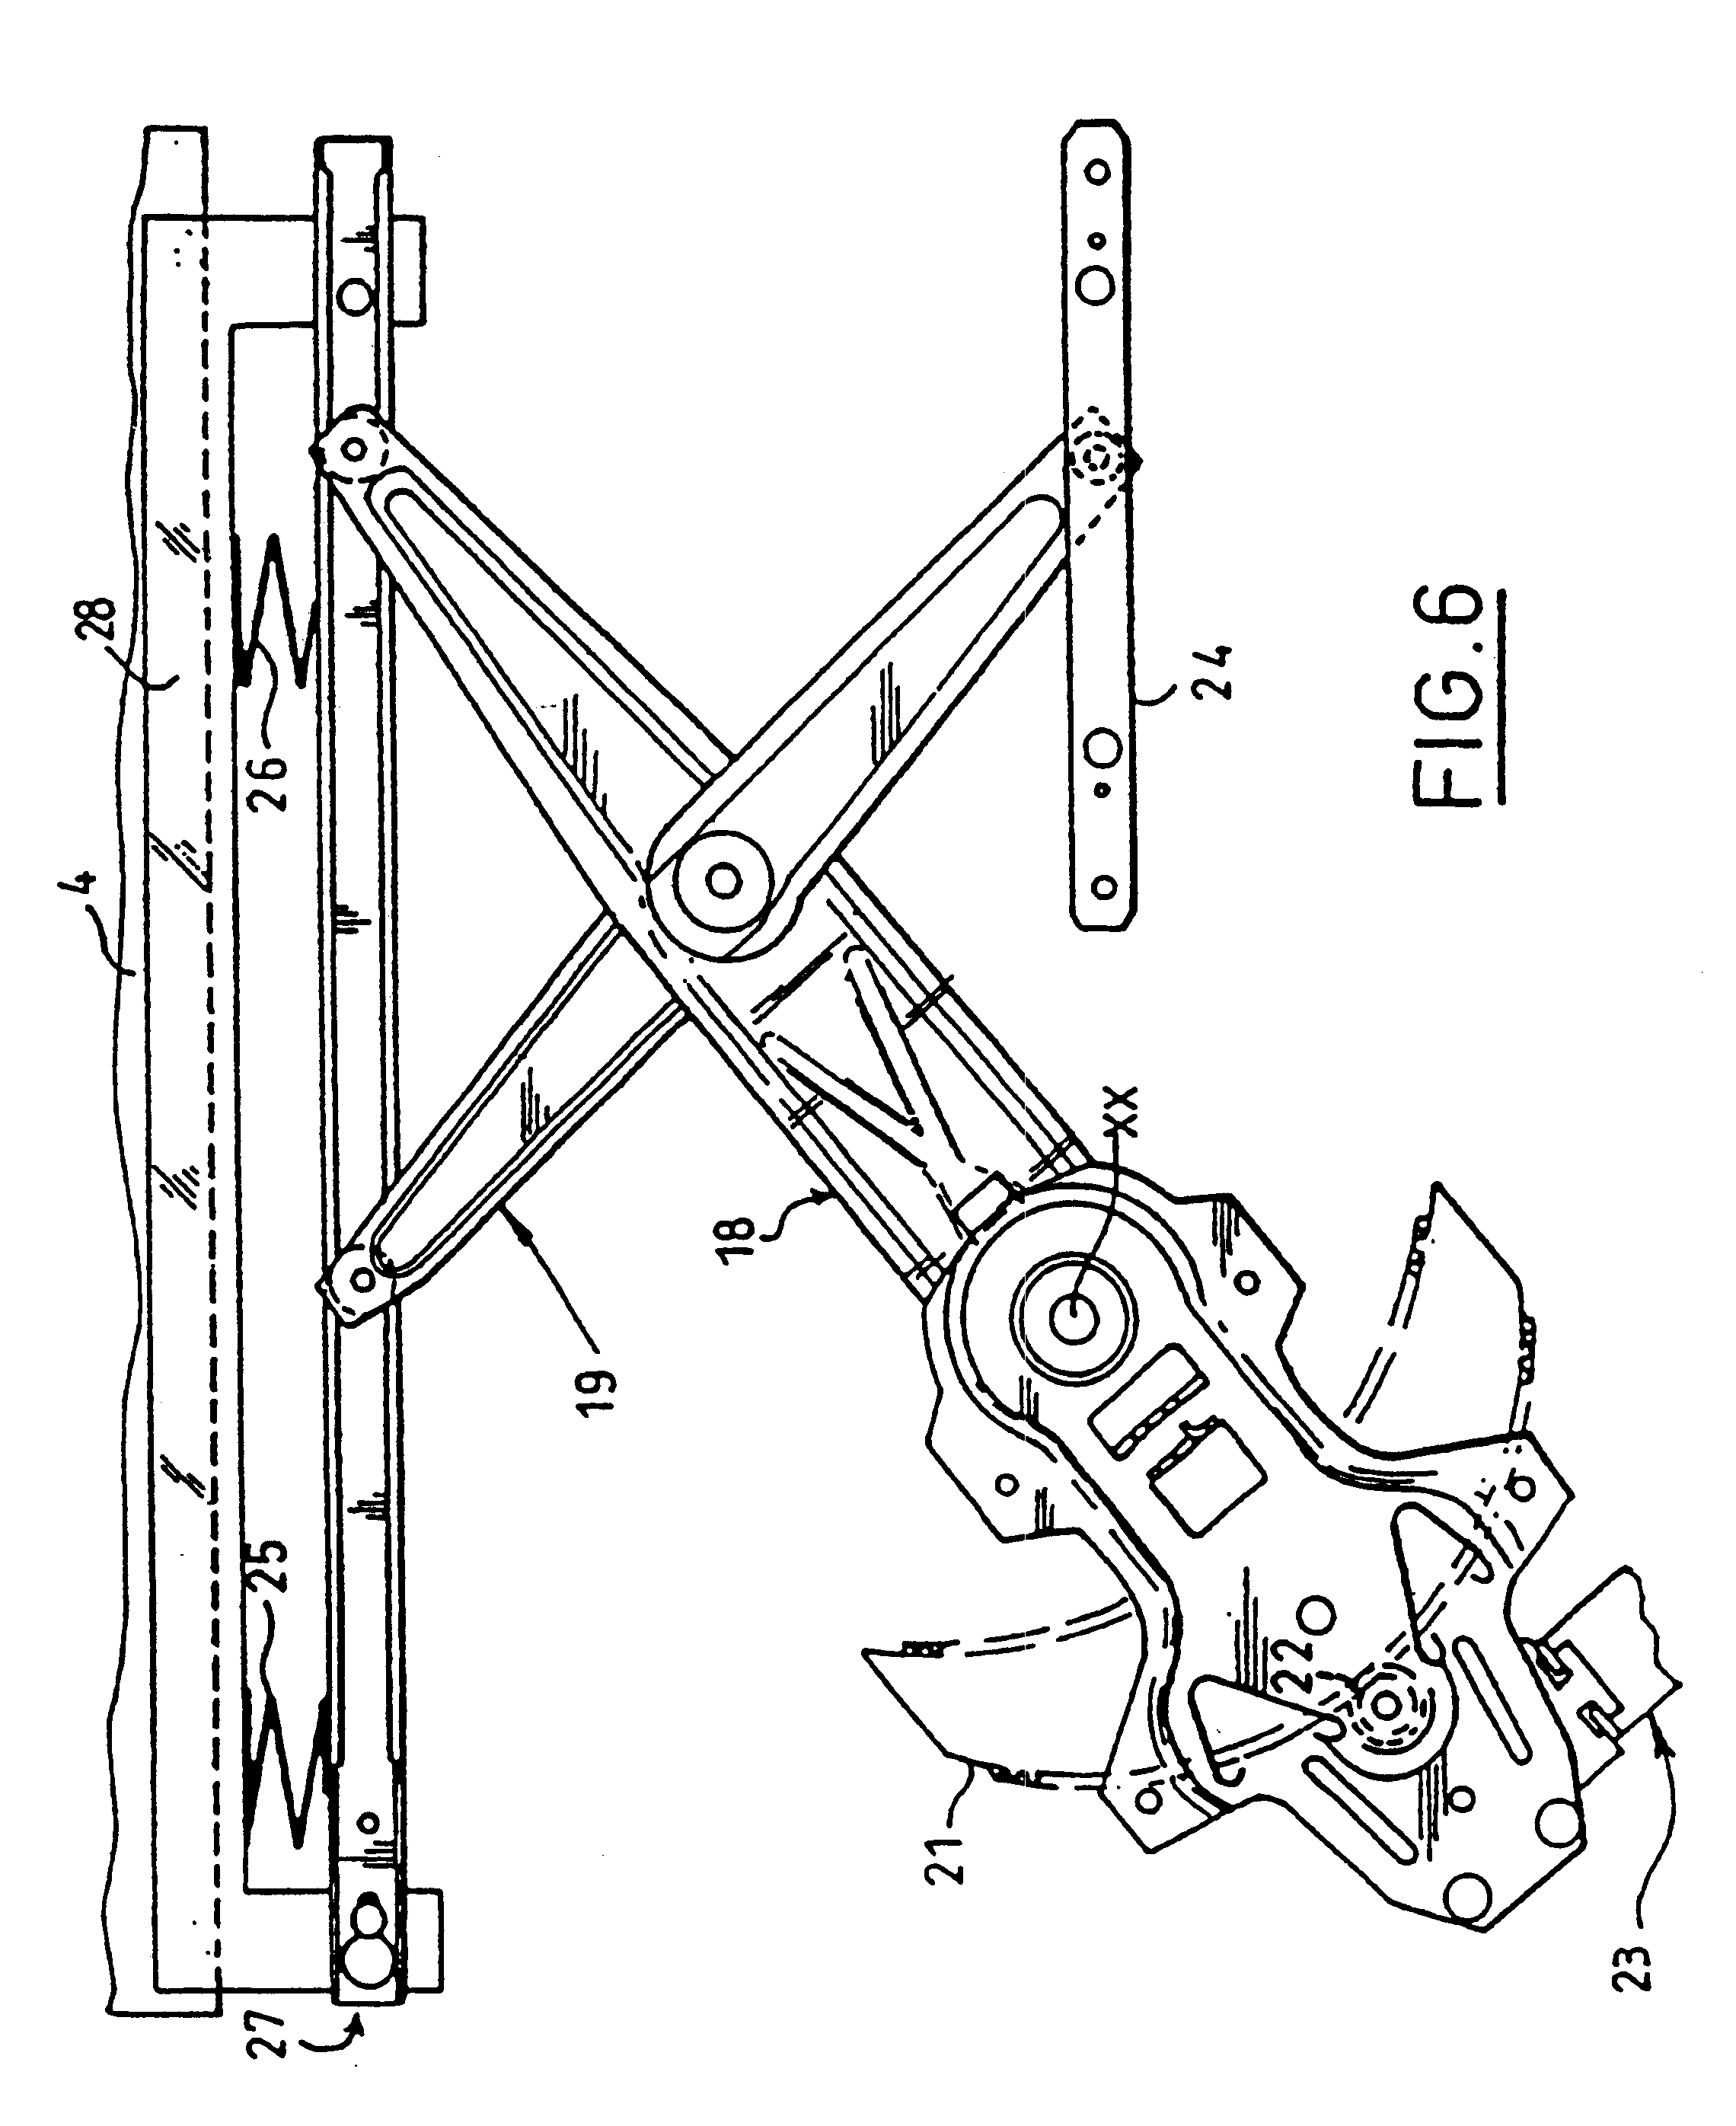 US06502352 20030107 D00004 patent us6502352 electric window regulator having a spring for window regulator diagram at soozxer.org